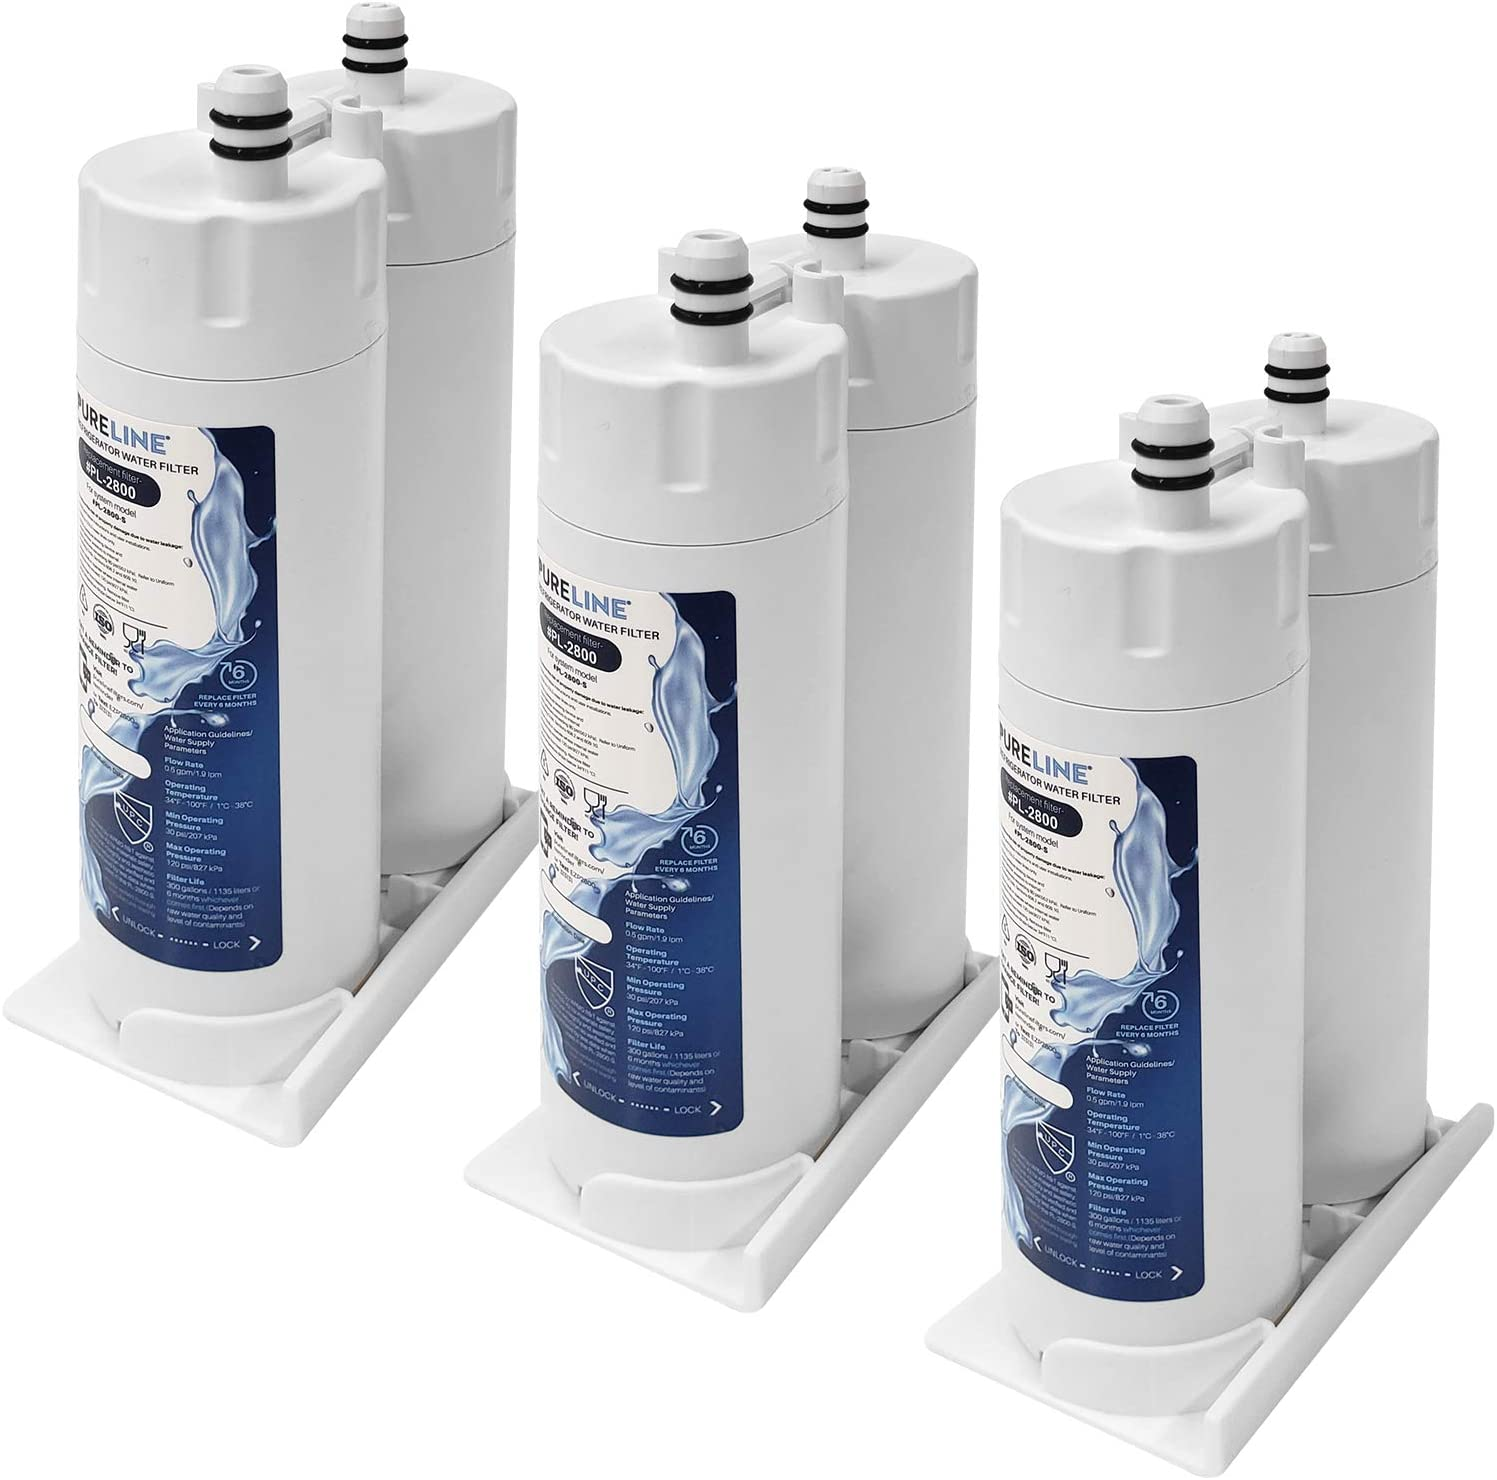 PURELINE PureAdvantage Water Filter Replacement. Compatible with Electrolux EWF01, FC-300, FC300, EFF-6018A, 241988703. Triple Action Filtration with Advance Carbon Block. (3 Pack)